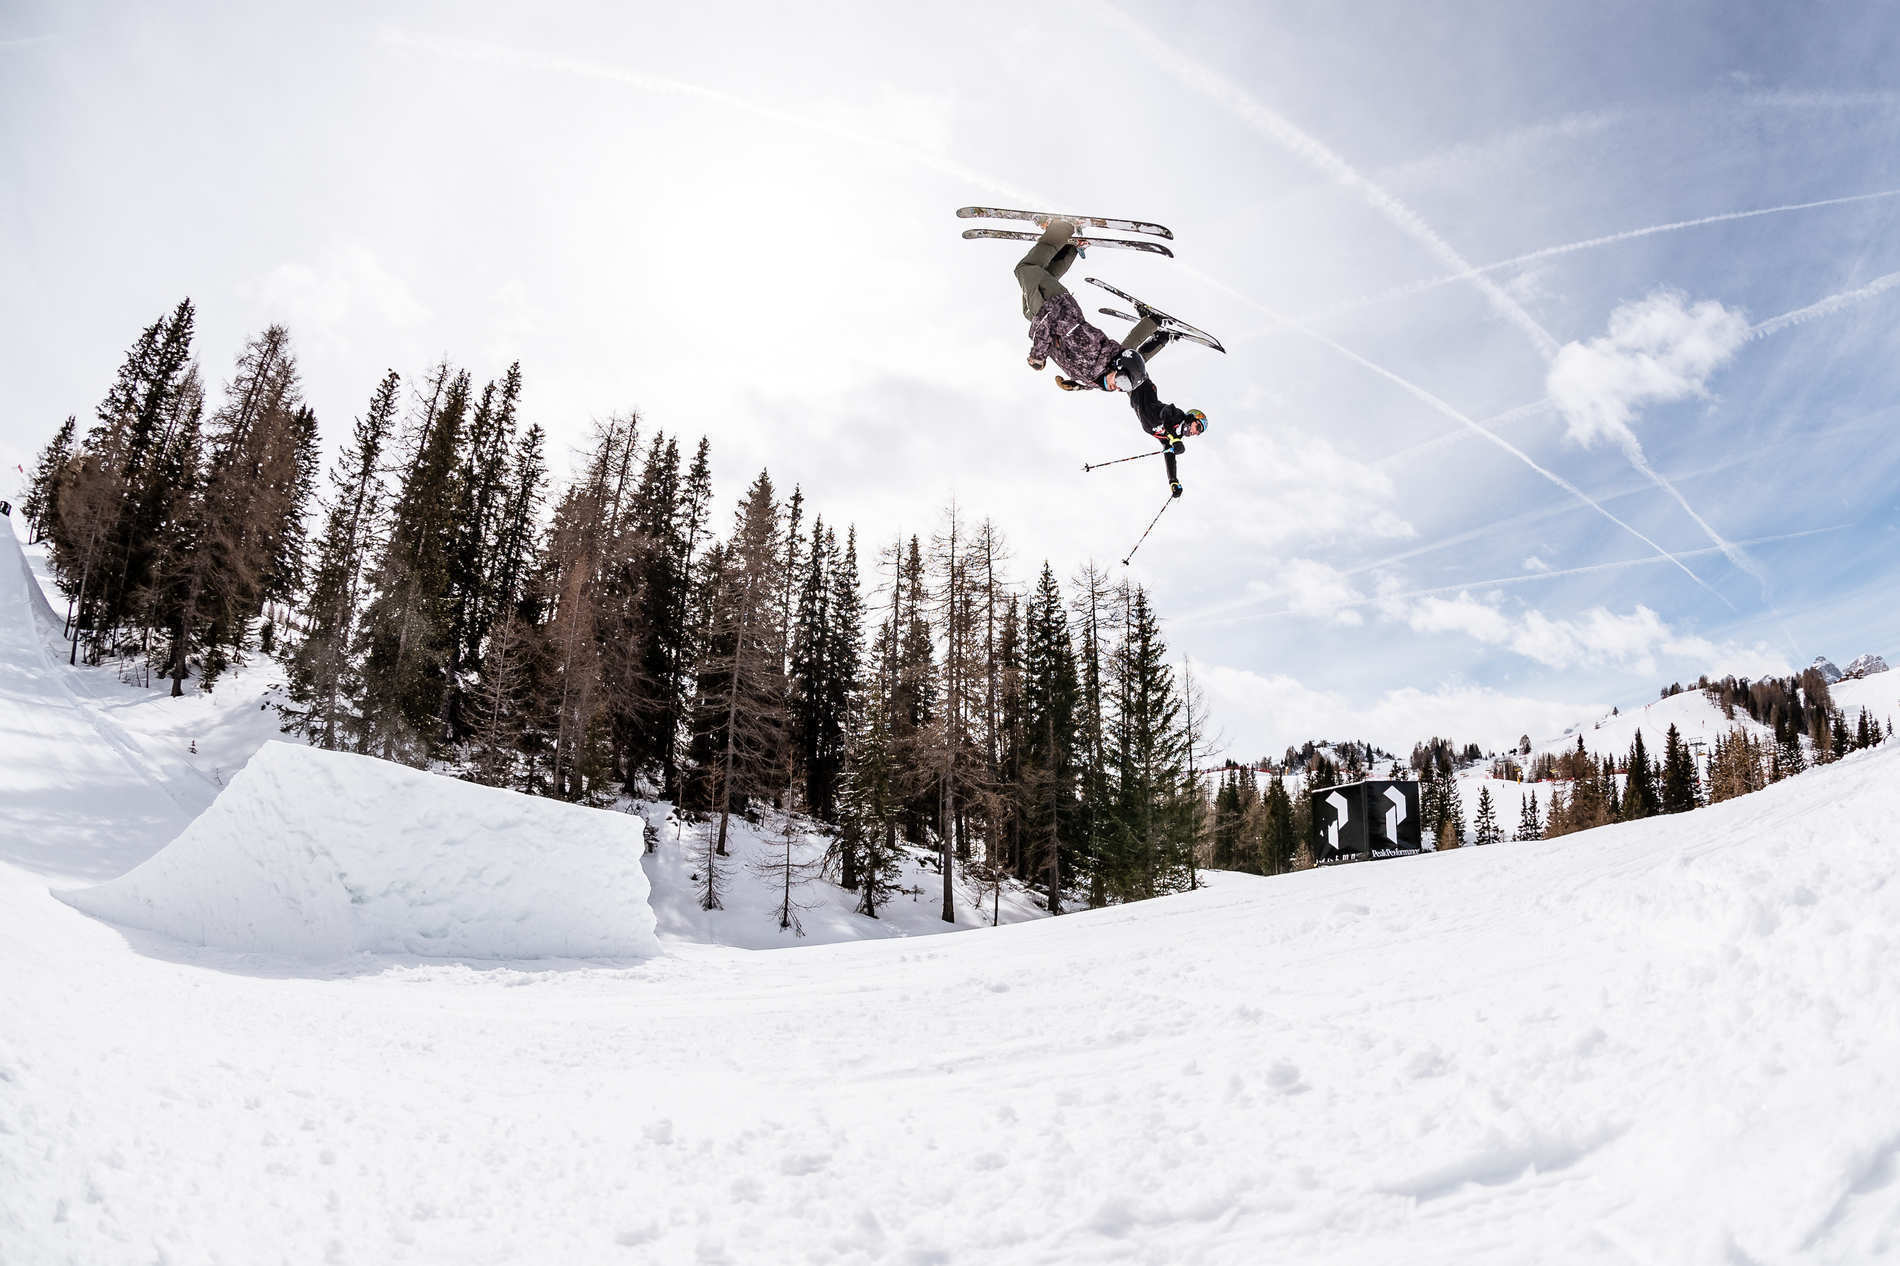 web alta badia 09 03 2019 action fs unknown rider christian riefenberg qparks 18